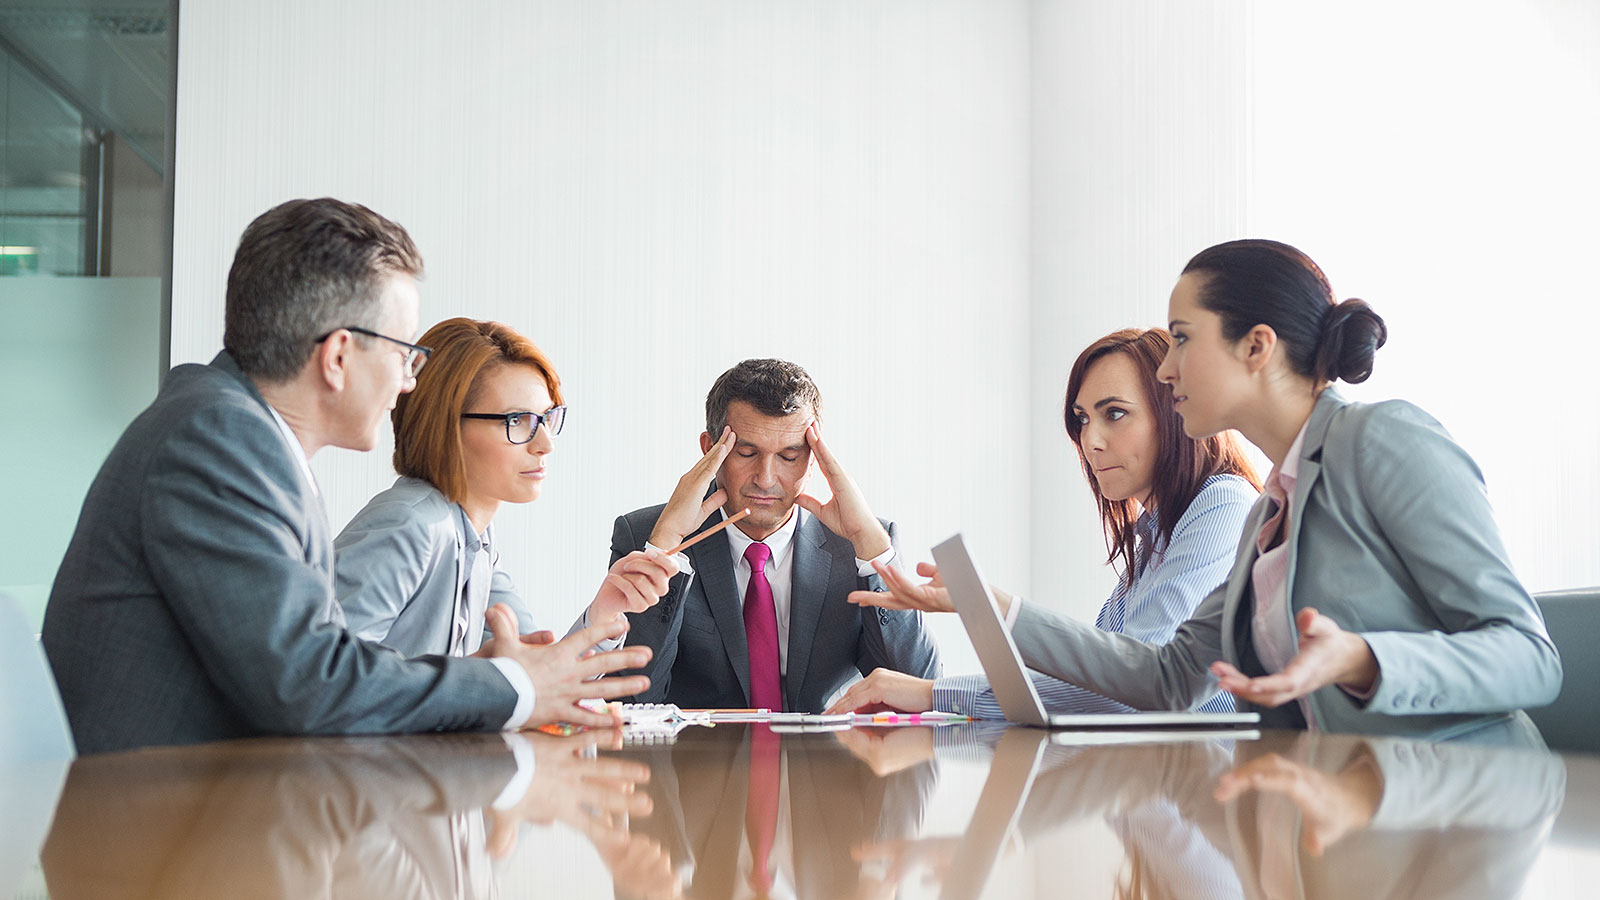 Beyond the bickering: 5 steps to resolving conflict in your team